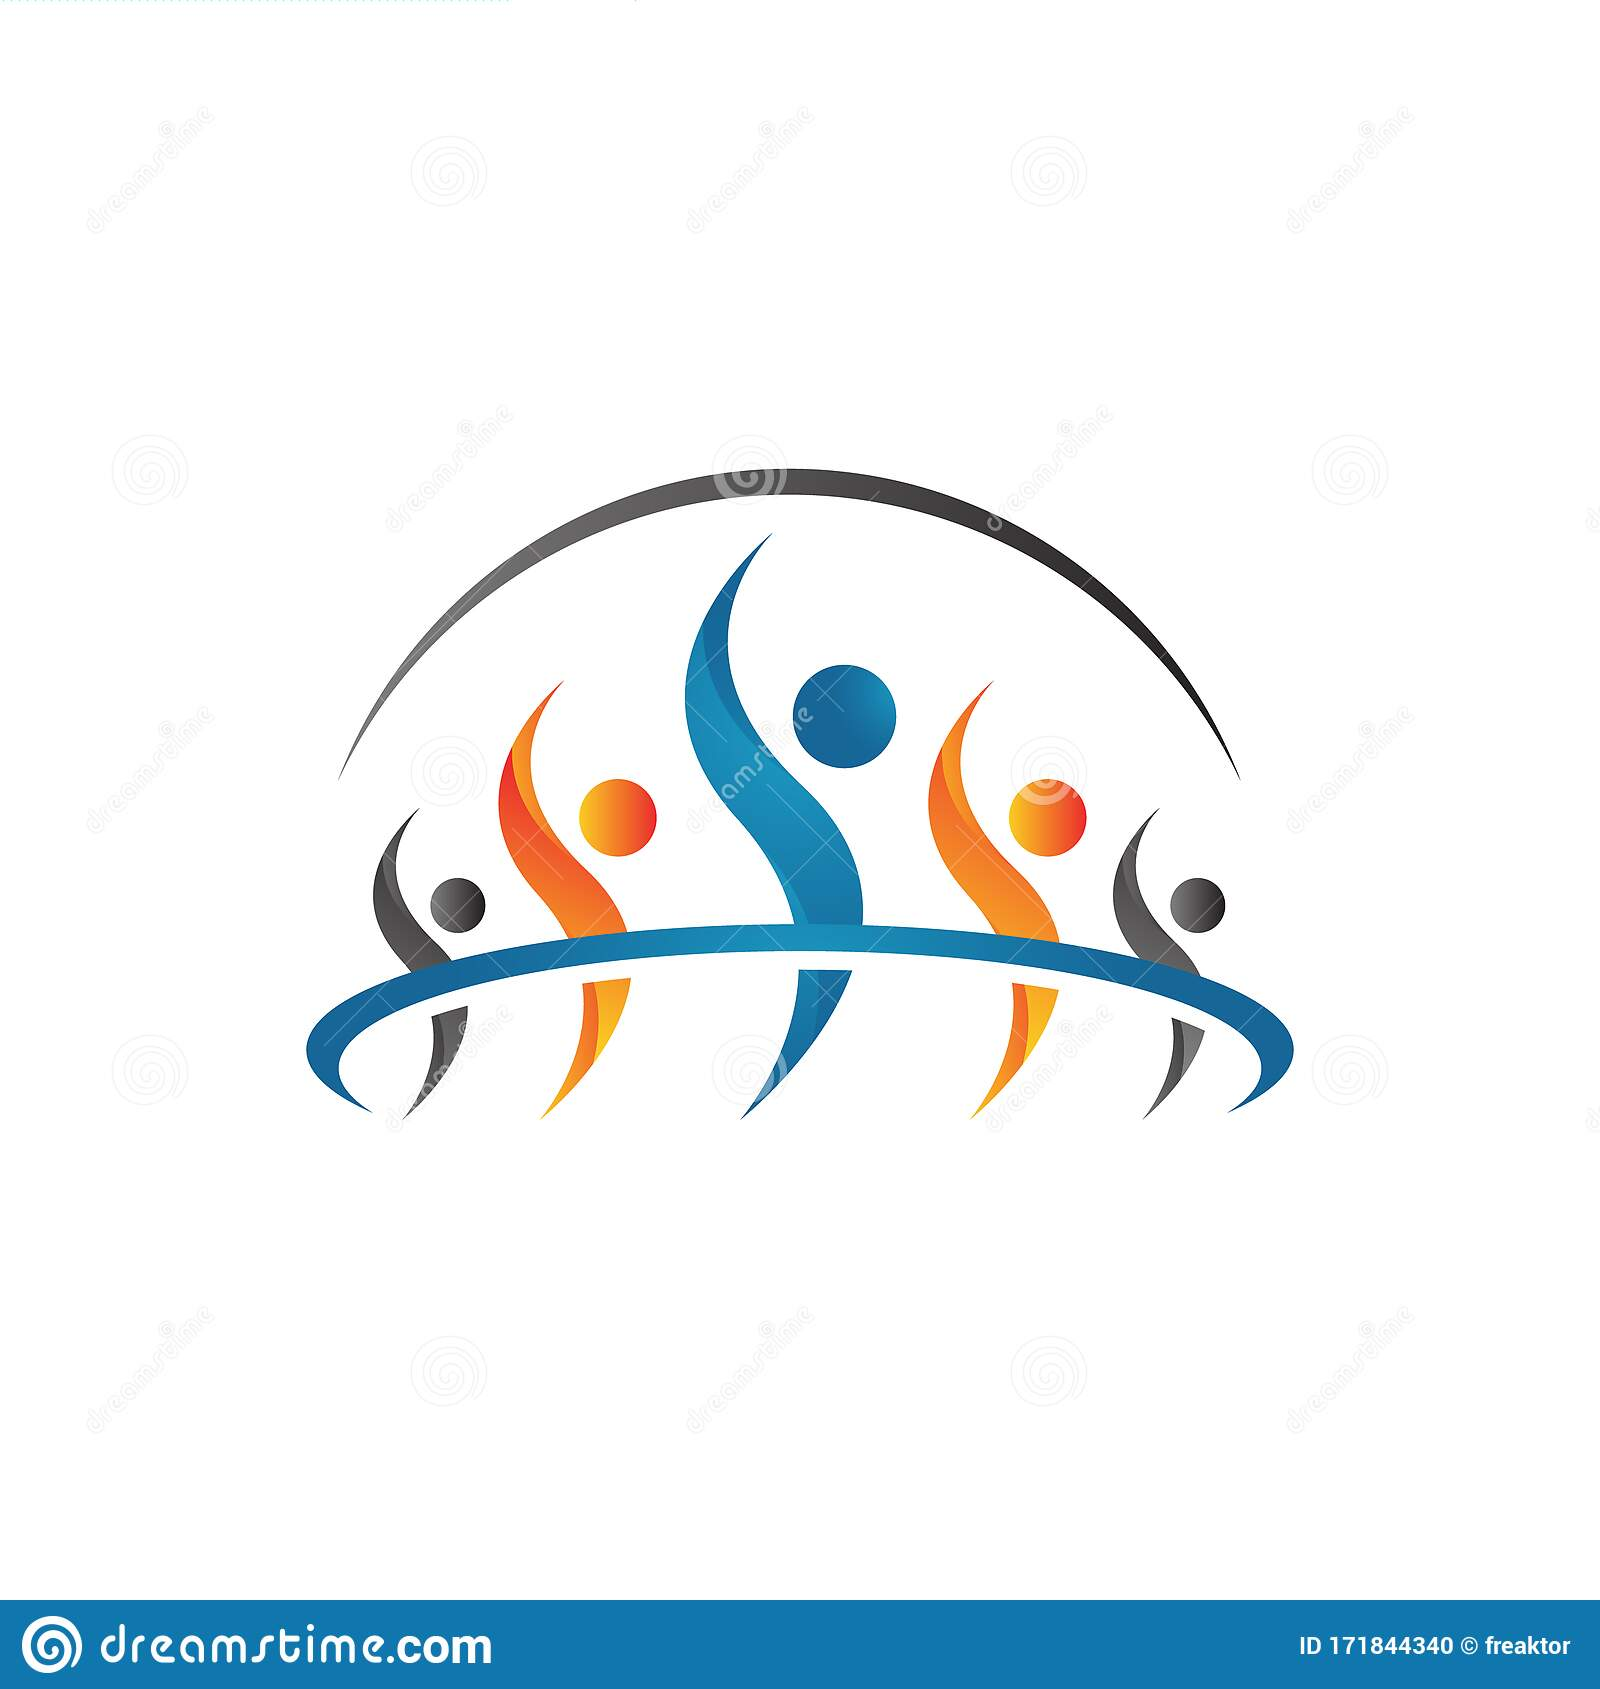 Abstract Together Unity People Community Logo Design